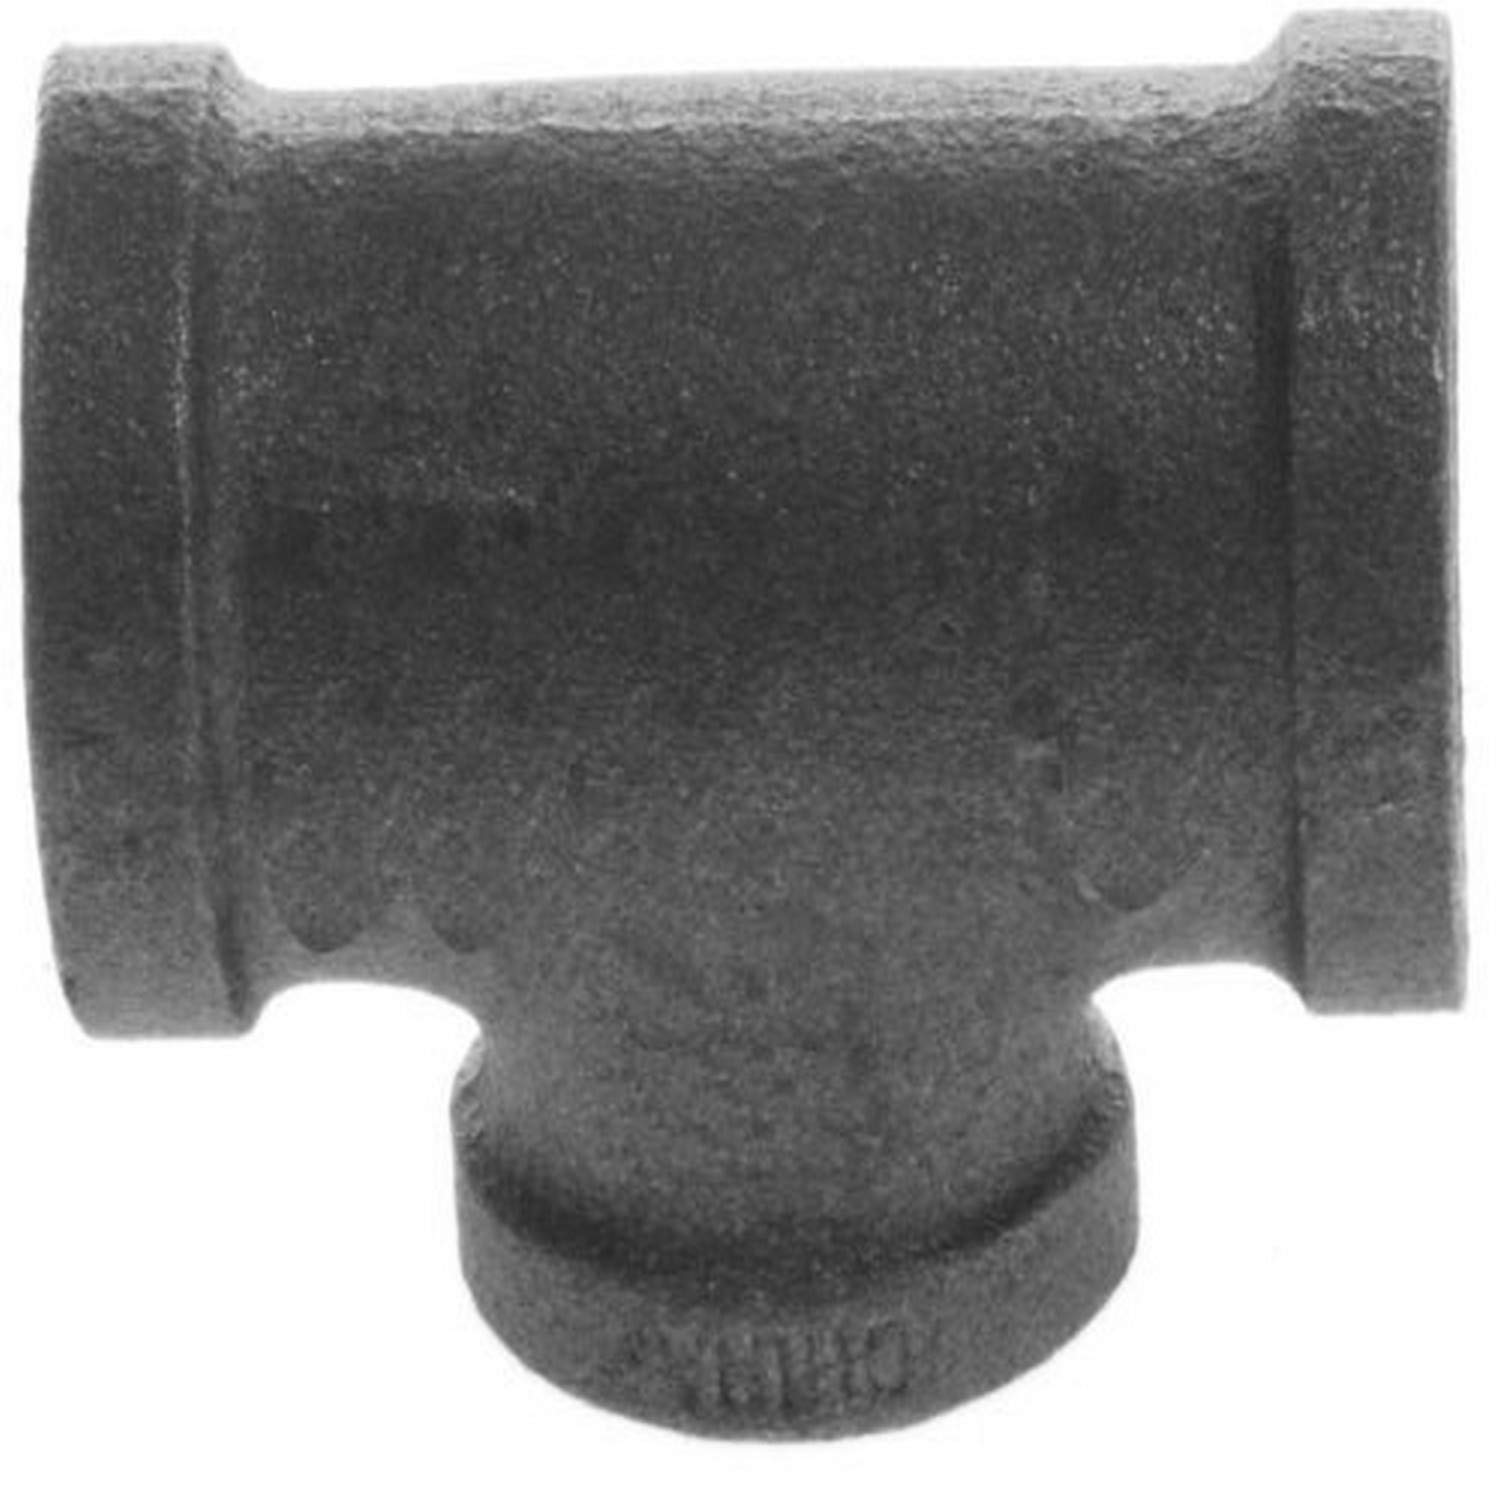 Plumbers Choice 93766 1-1//2-Inch x 1-Inch x 1//2-Inch Black Fitting with Reducing Tee 5-Pack